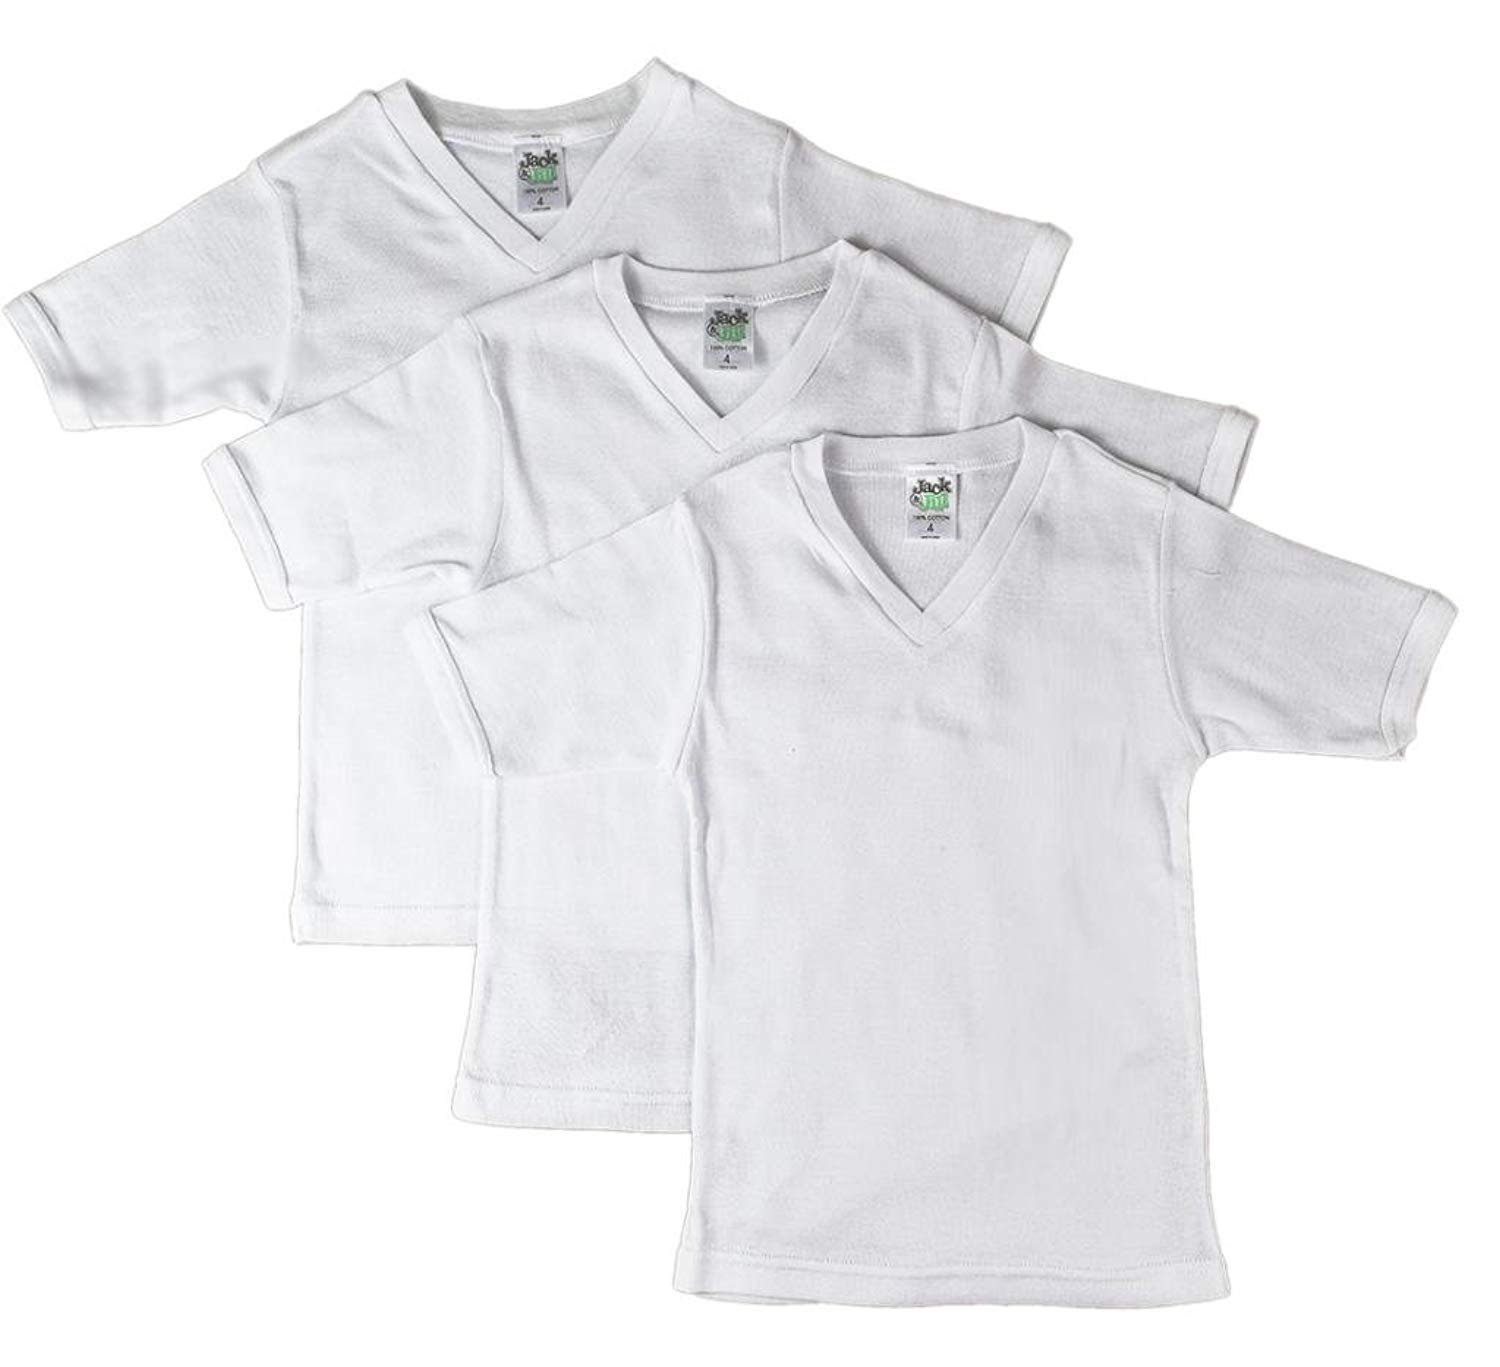 Jill and Jack Boys Vneck Short Sleeve 561